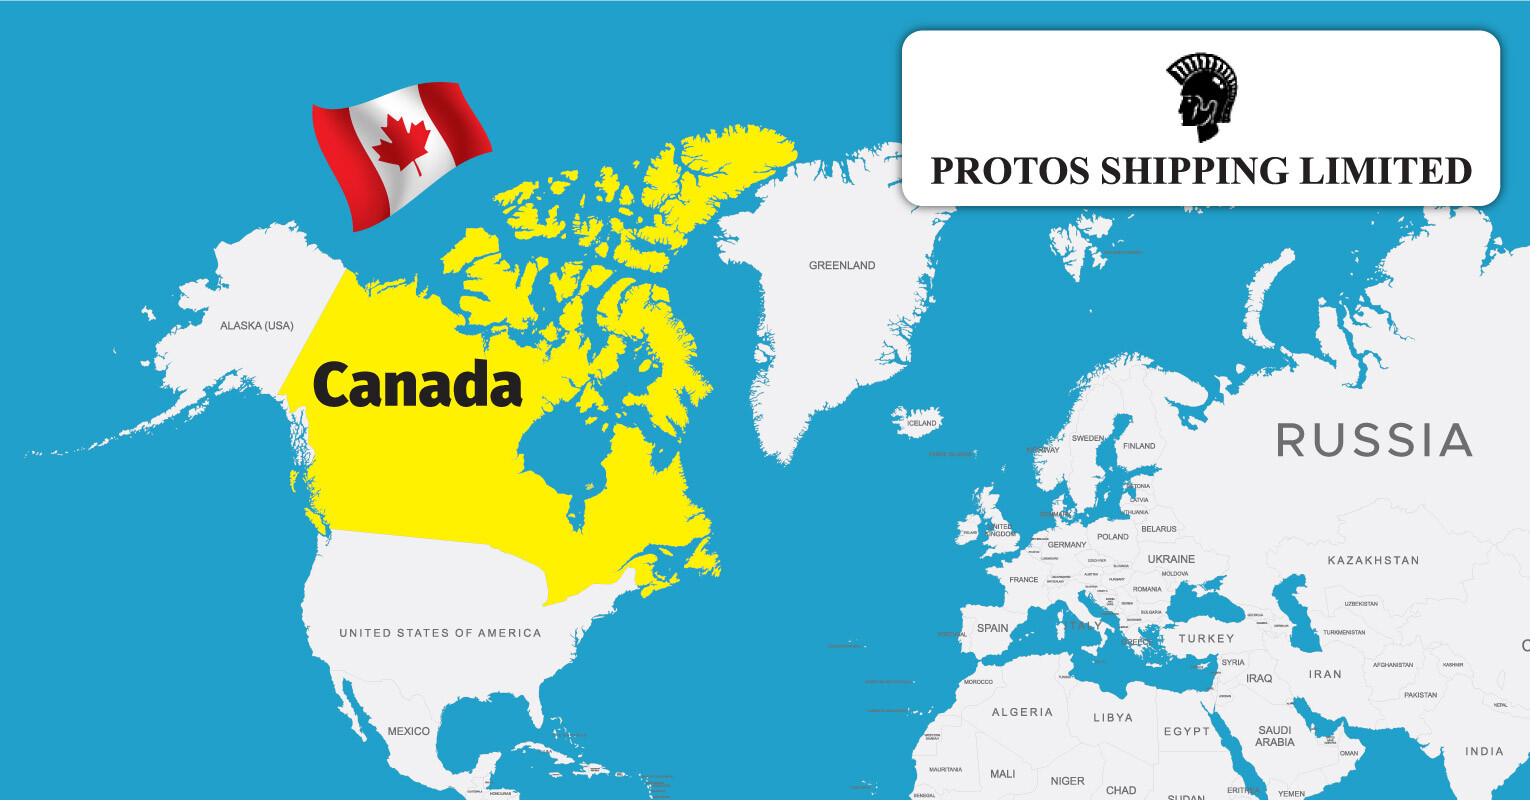 New member representing Canada – Protos Shipping Limited